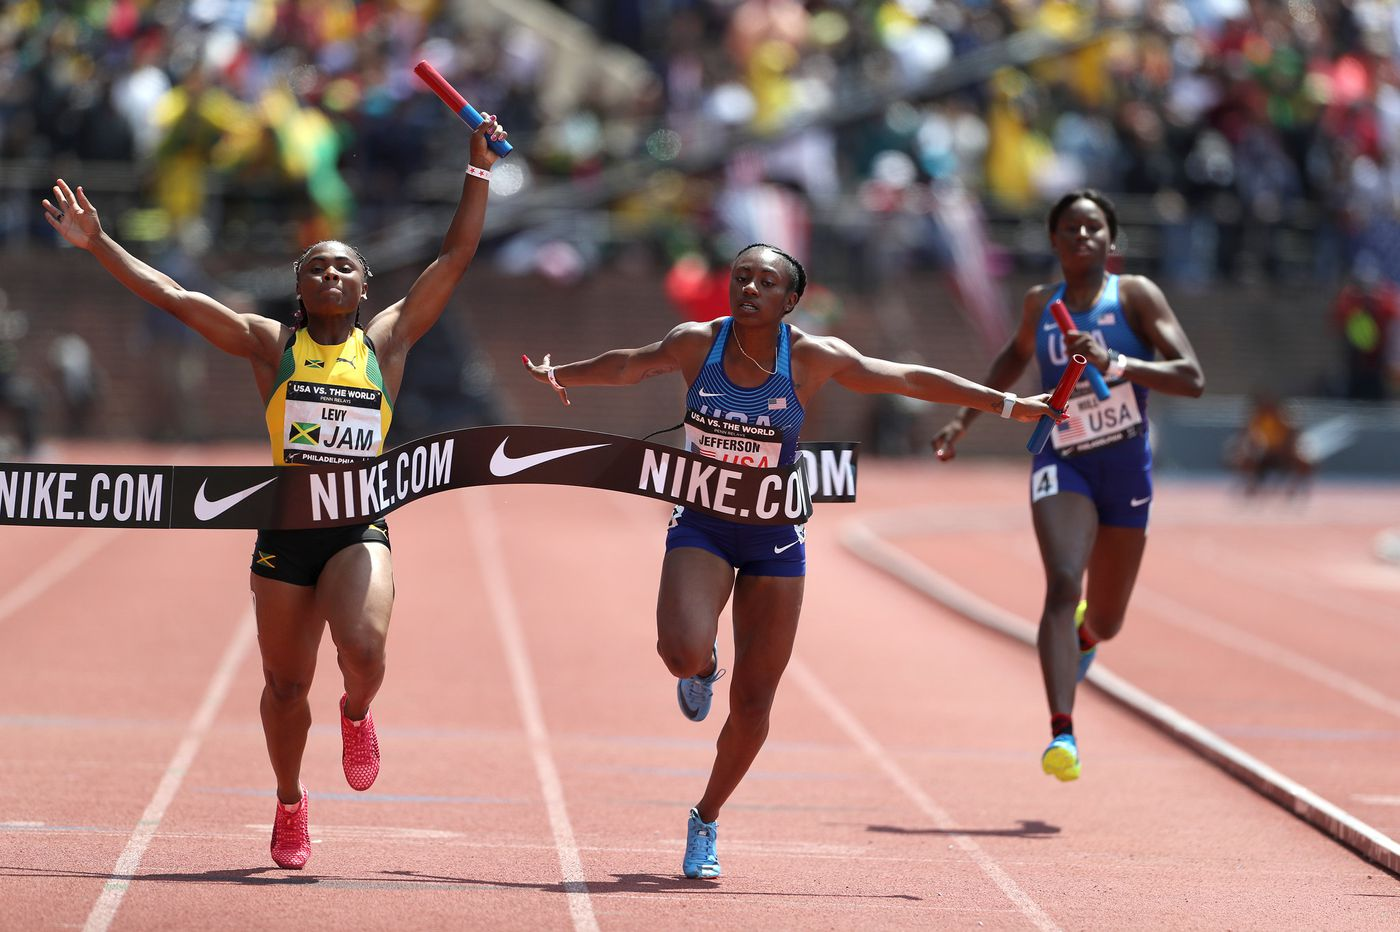 USA vs. the World: A Penn Relays fan favorite celebrates 20 years this week